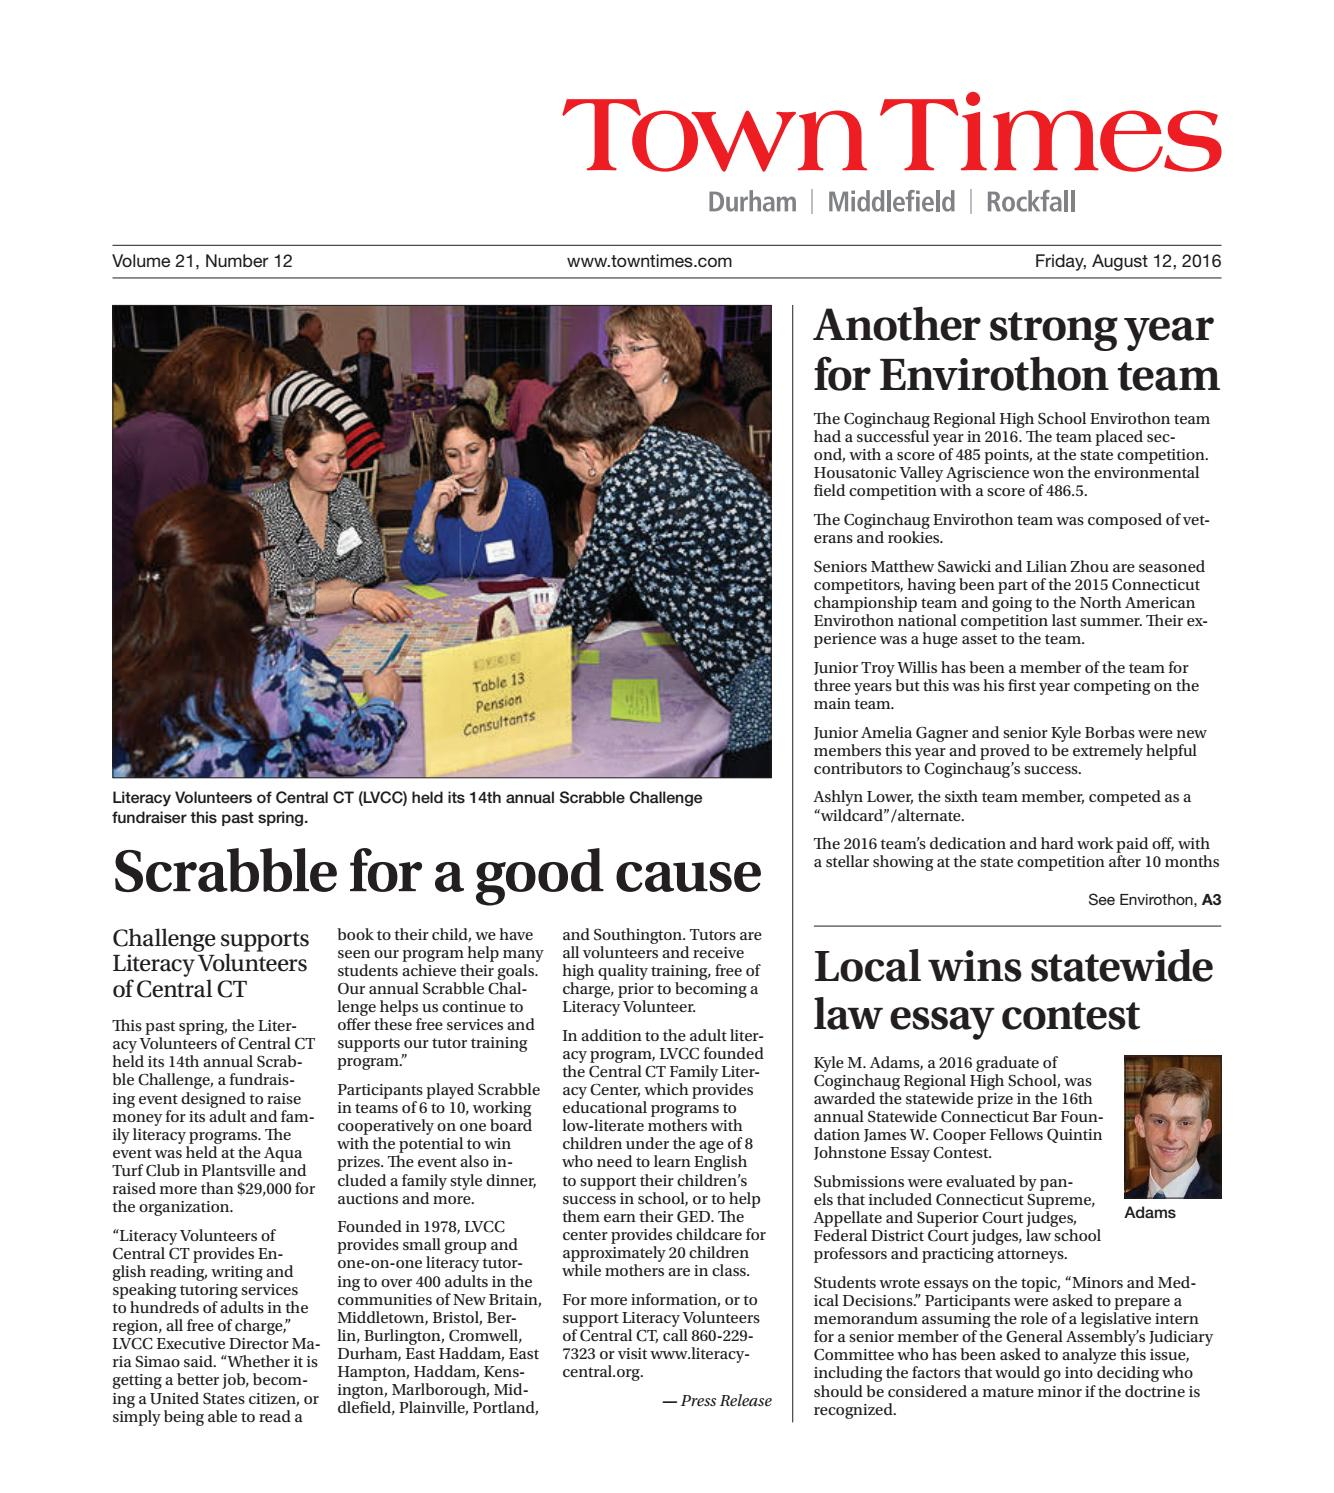 20160812towntimes by town times newspaper issuu xflitez Choice Image